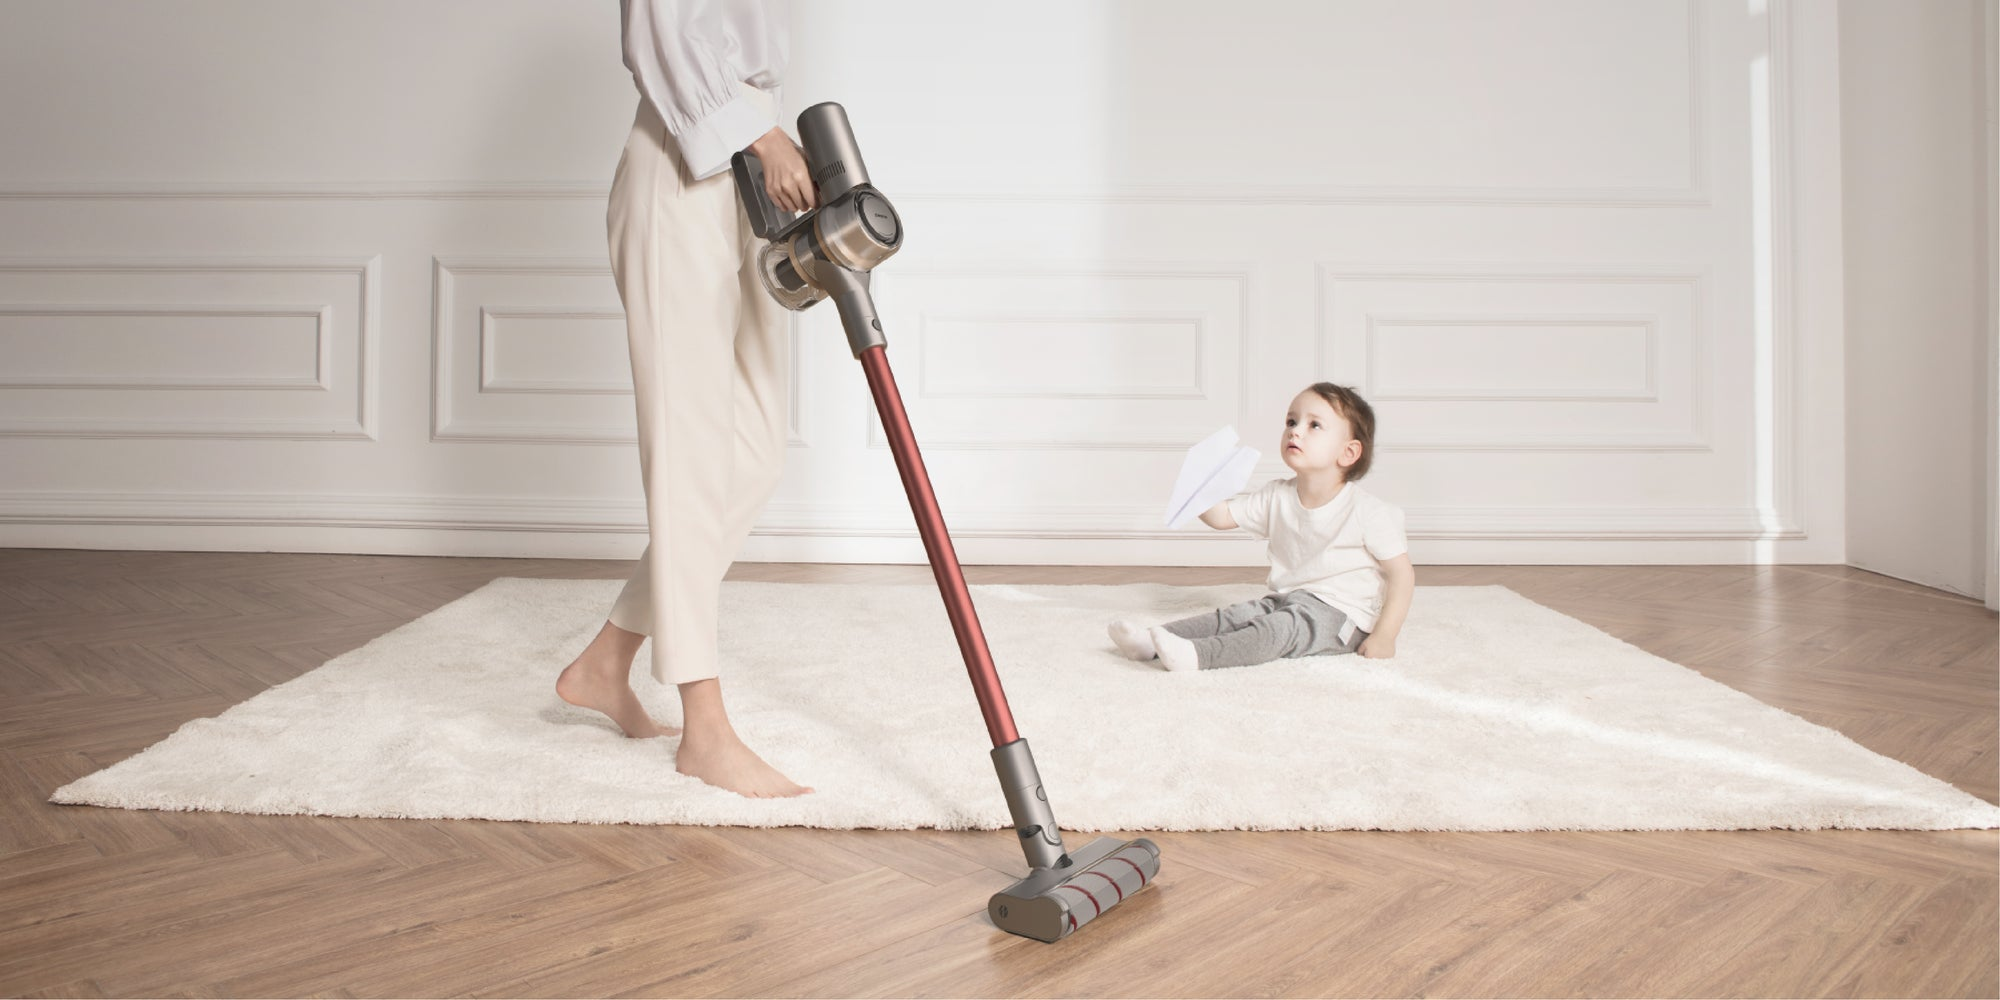 Dreame V11 wireless vacuum cleaner with strong performance